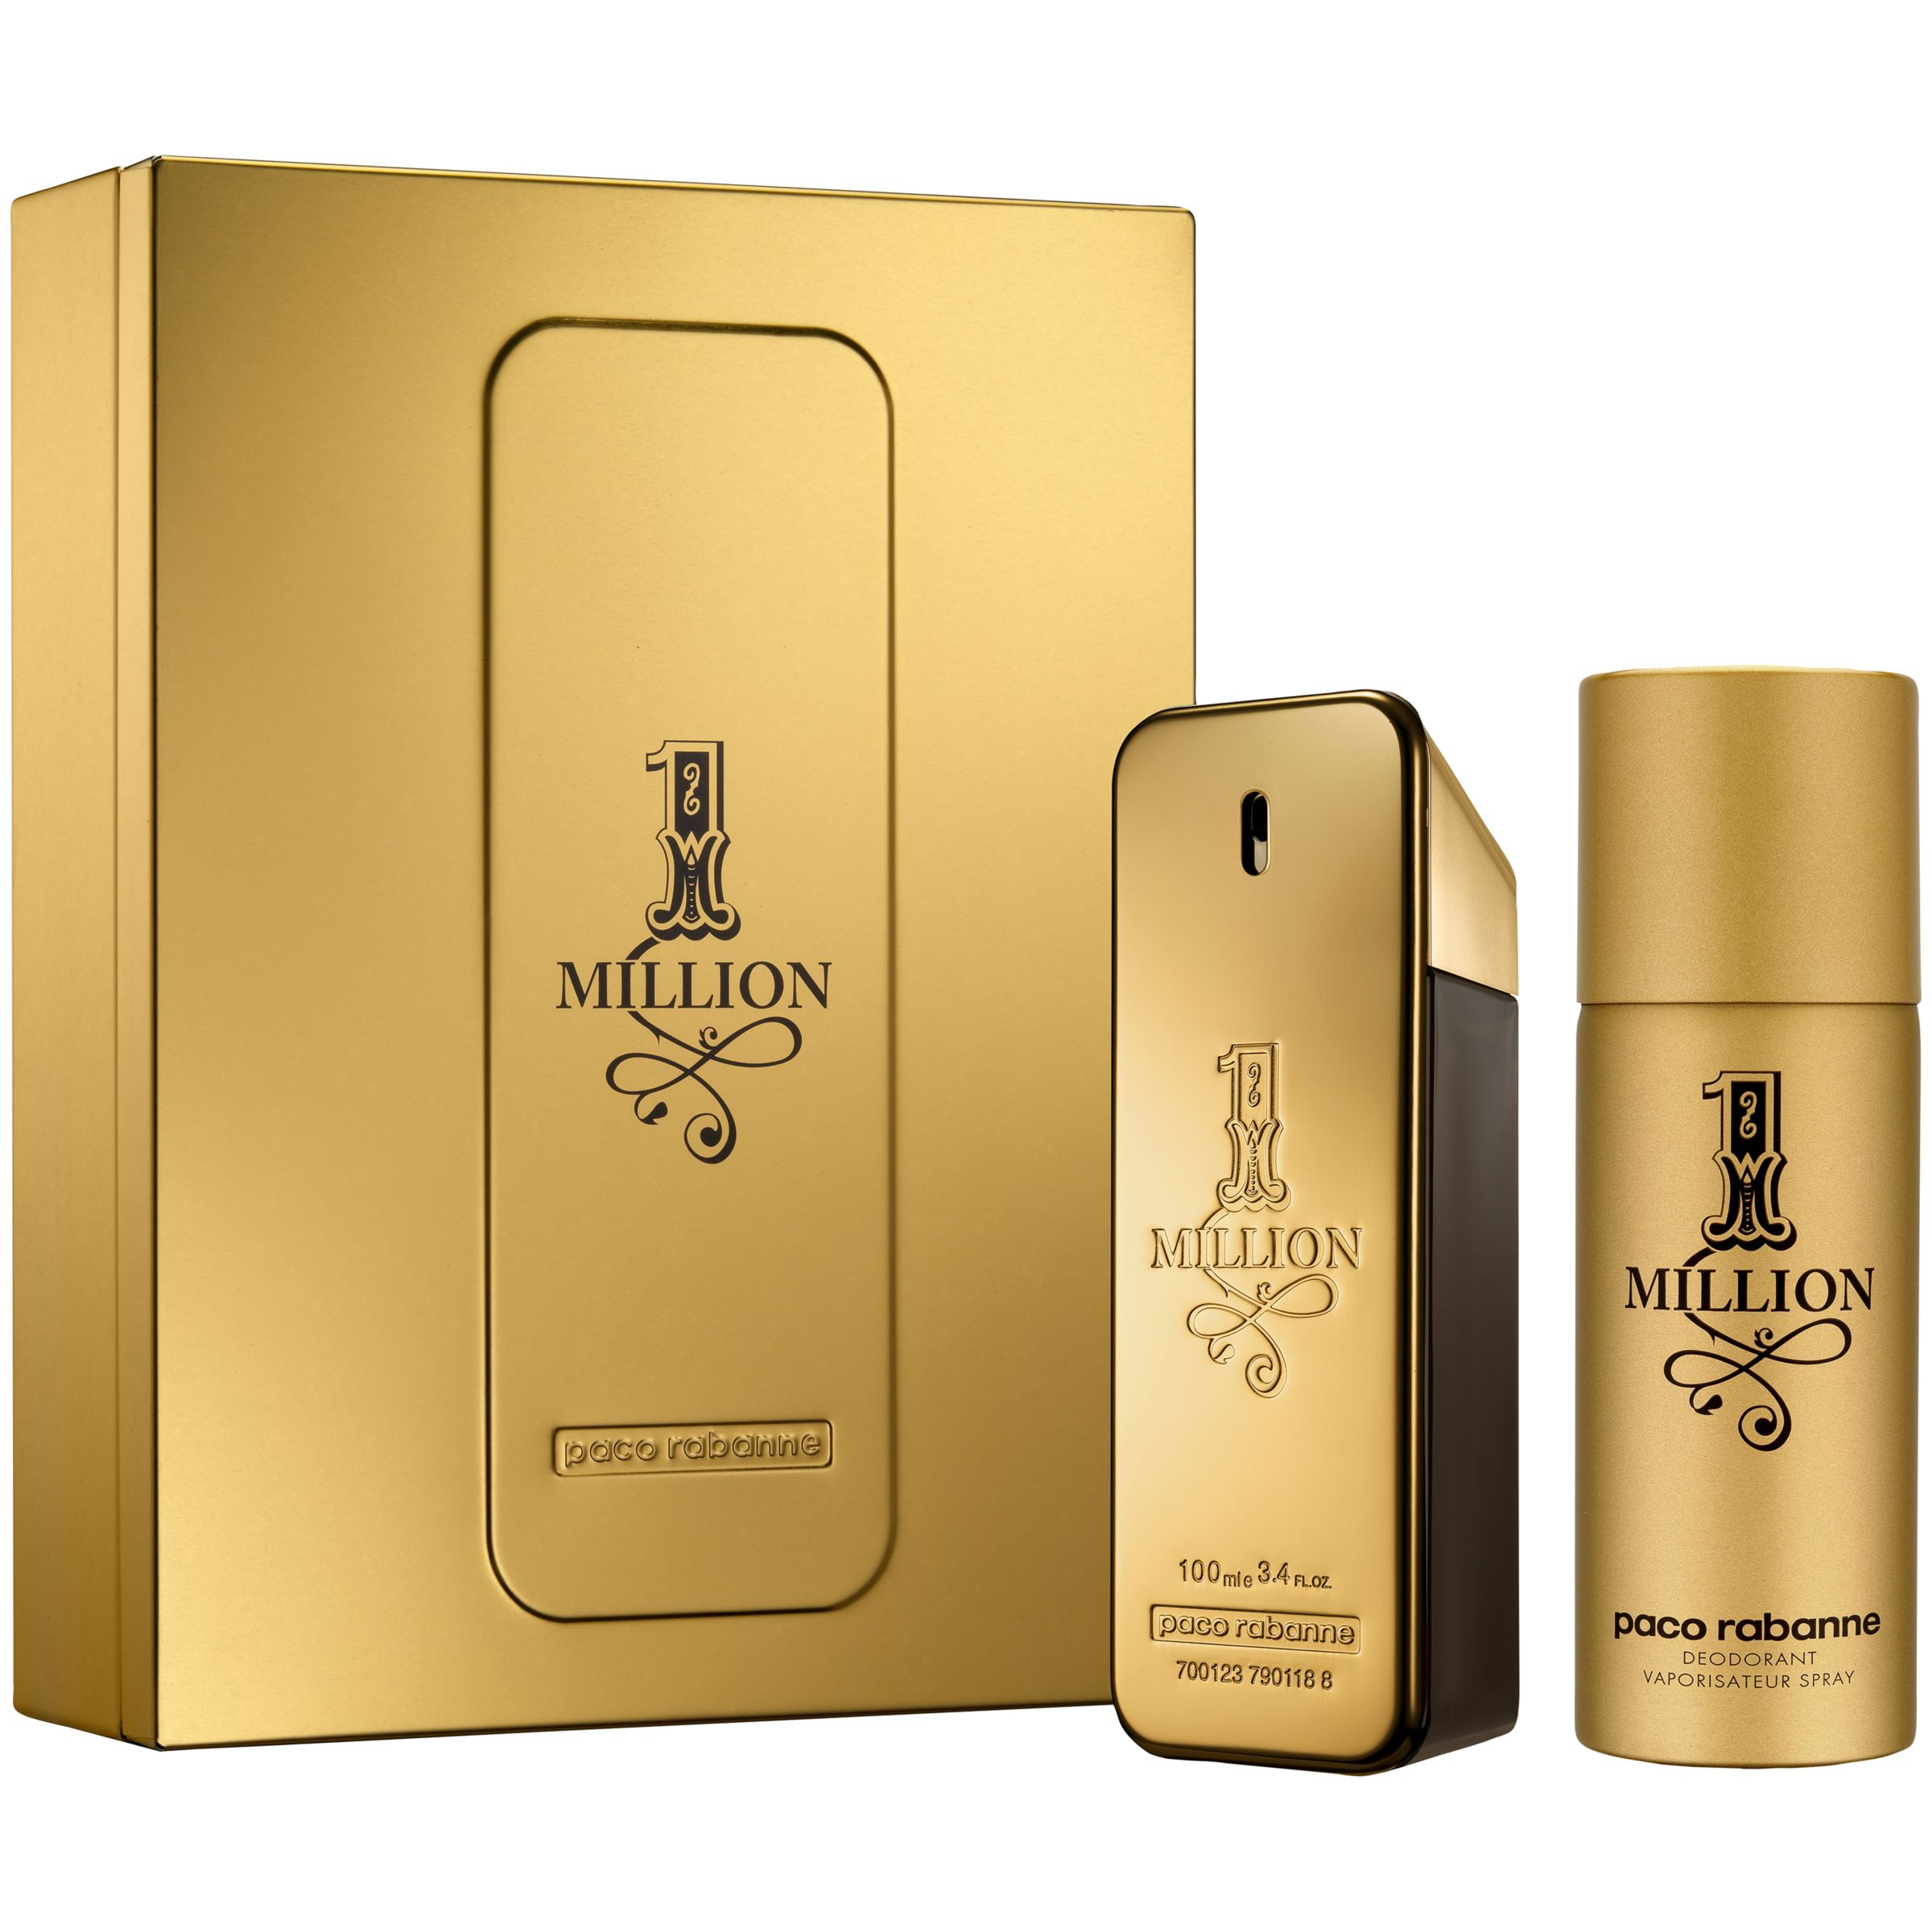 Paco Rabanne 1 Million Eau de Toilette Fragrance Set 100ml